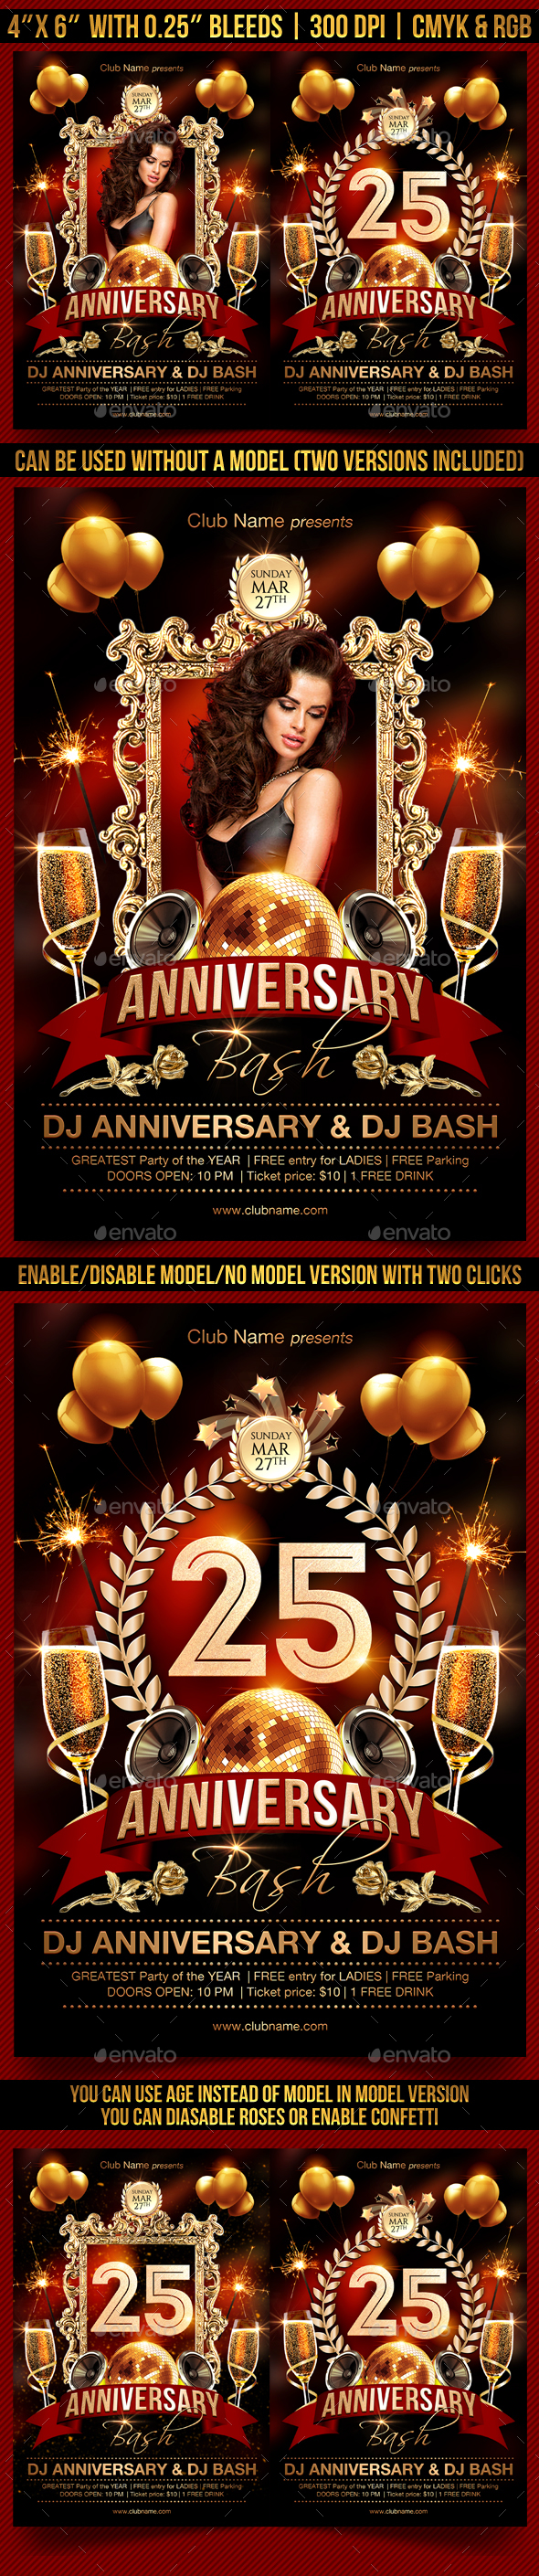 Anniversary Bash Flyer Template - Clubs & Parties Events